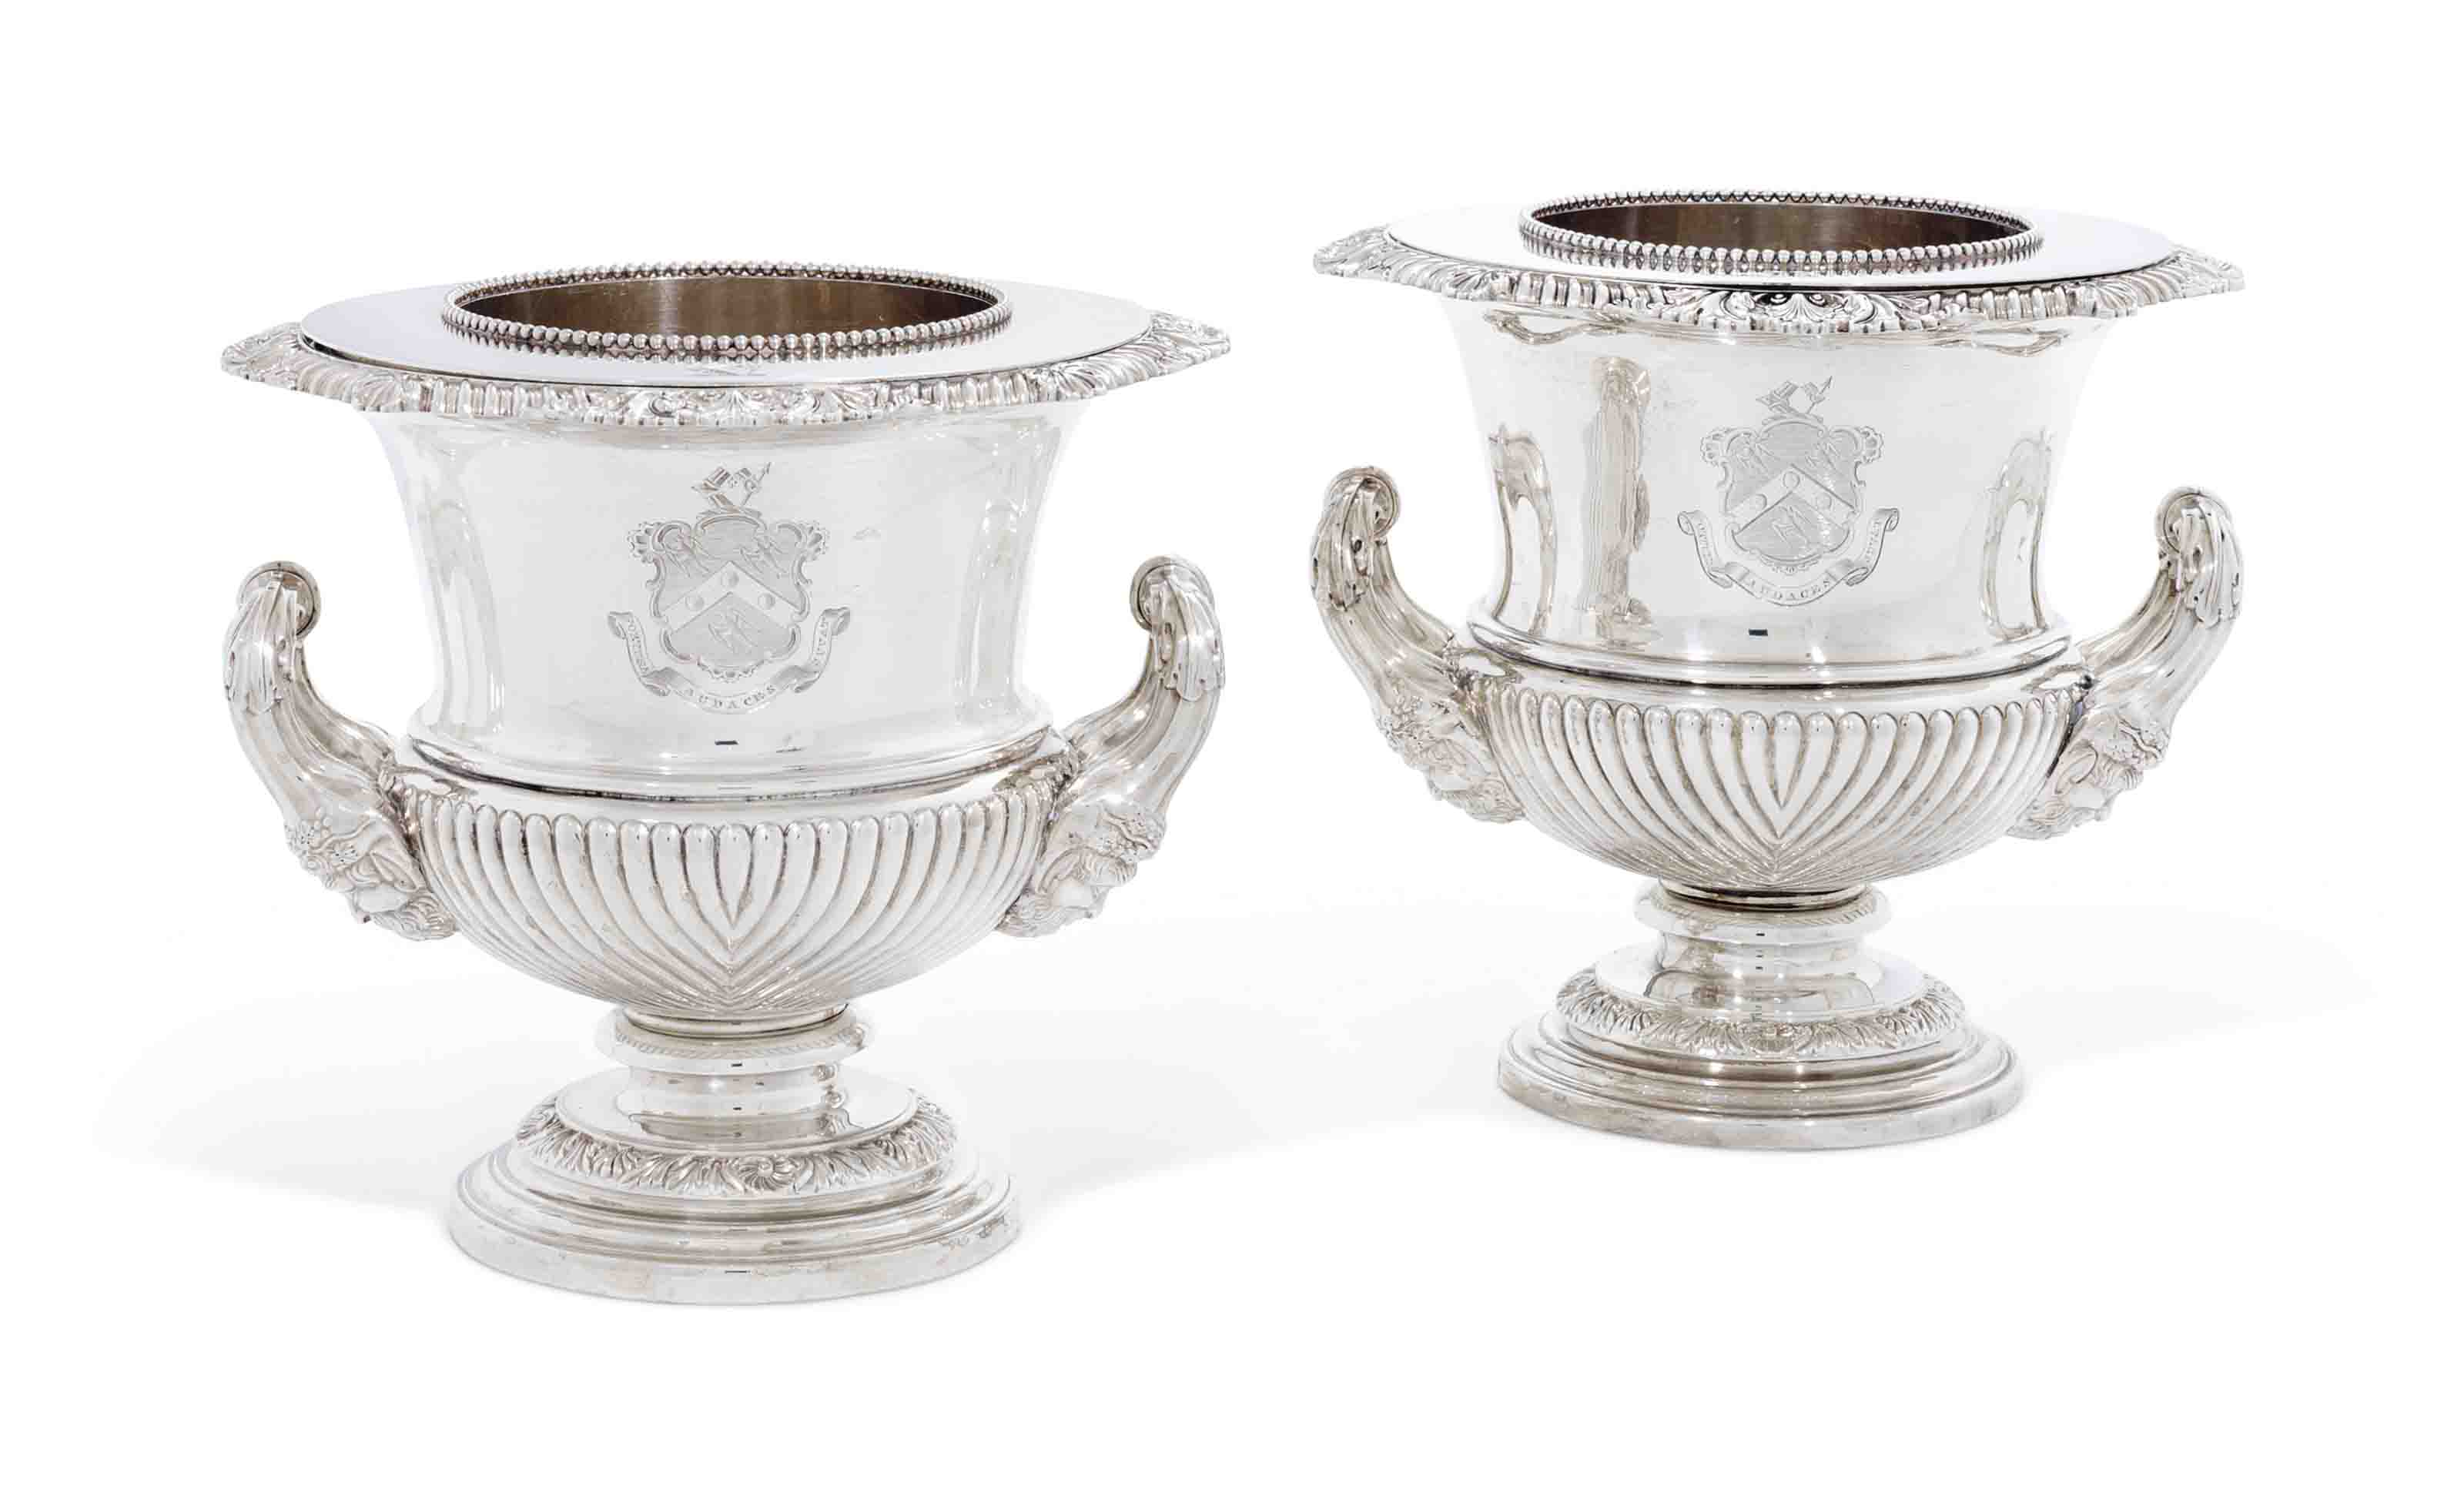 TWO GEORGE IV SILVER WINE-COOLERS, COLLARS AND LINERS